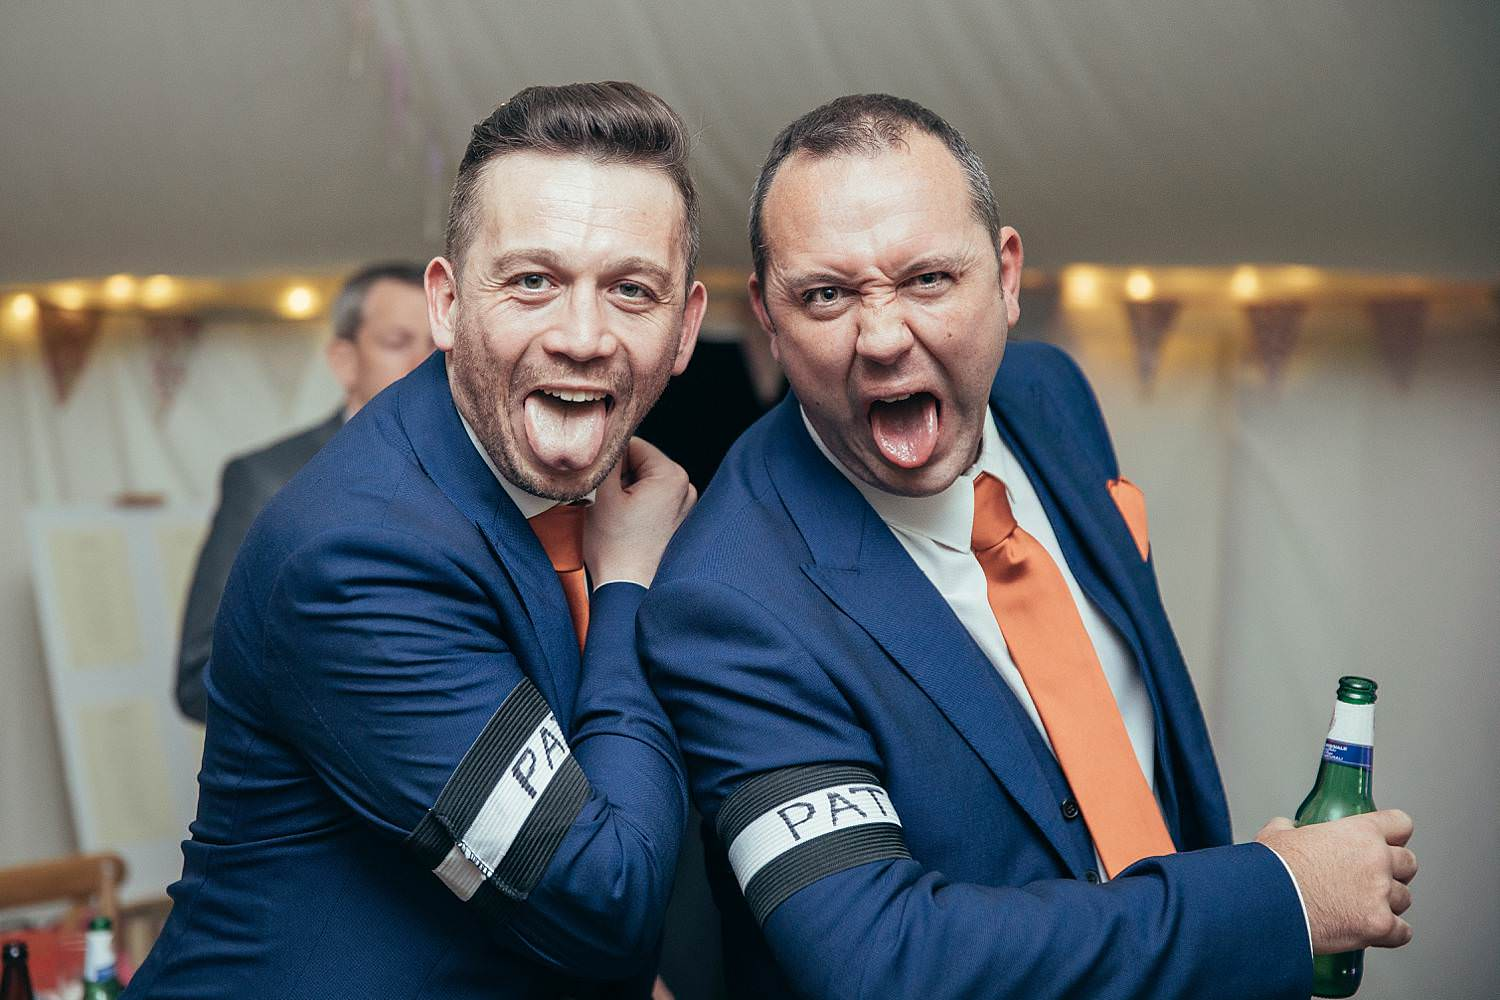 Groom and his friend doing a New Zealand Rugby pose